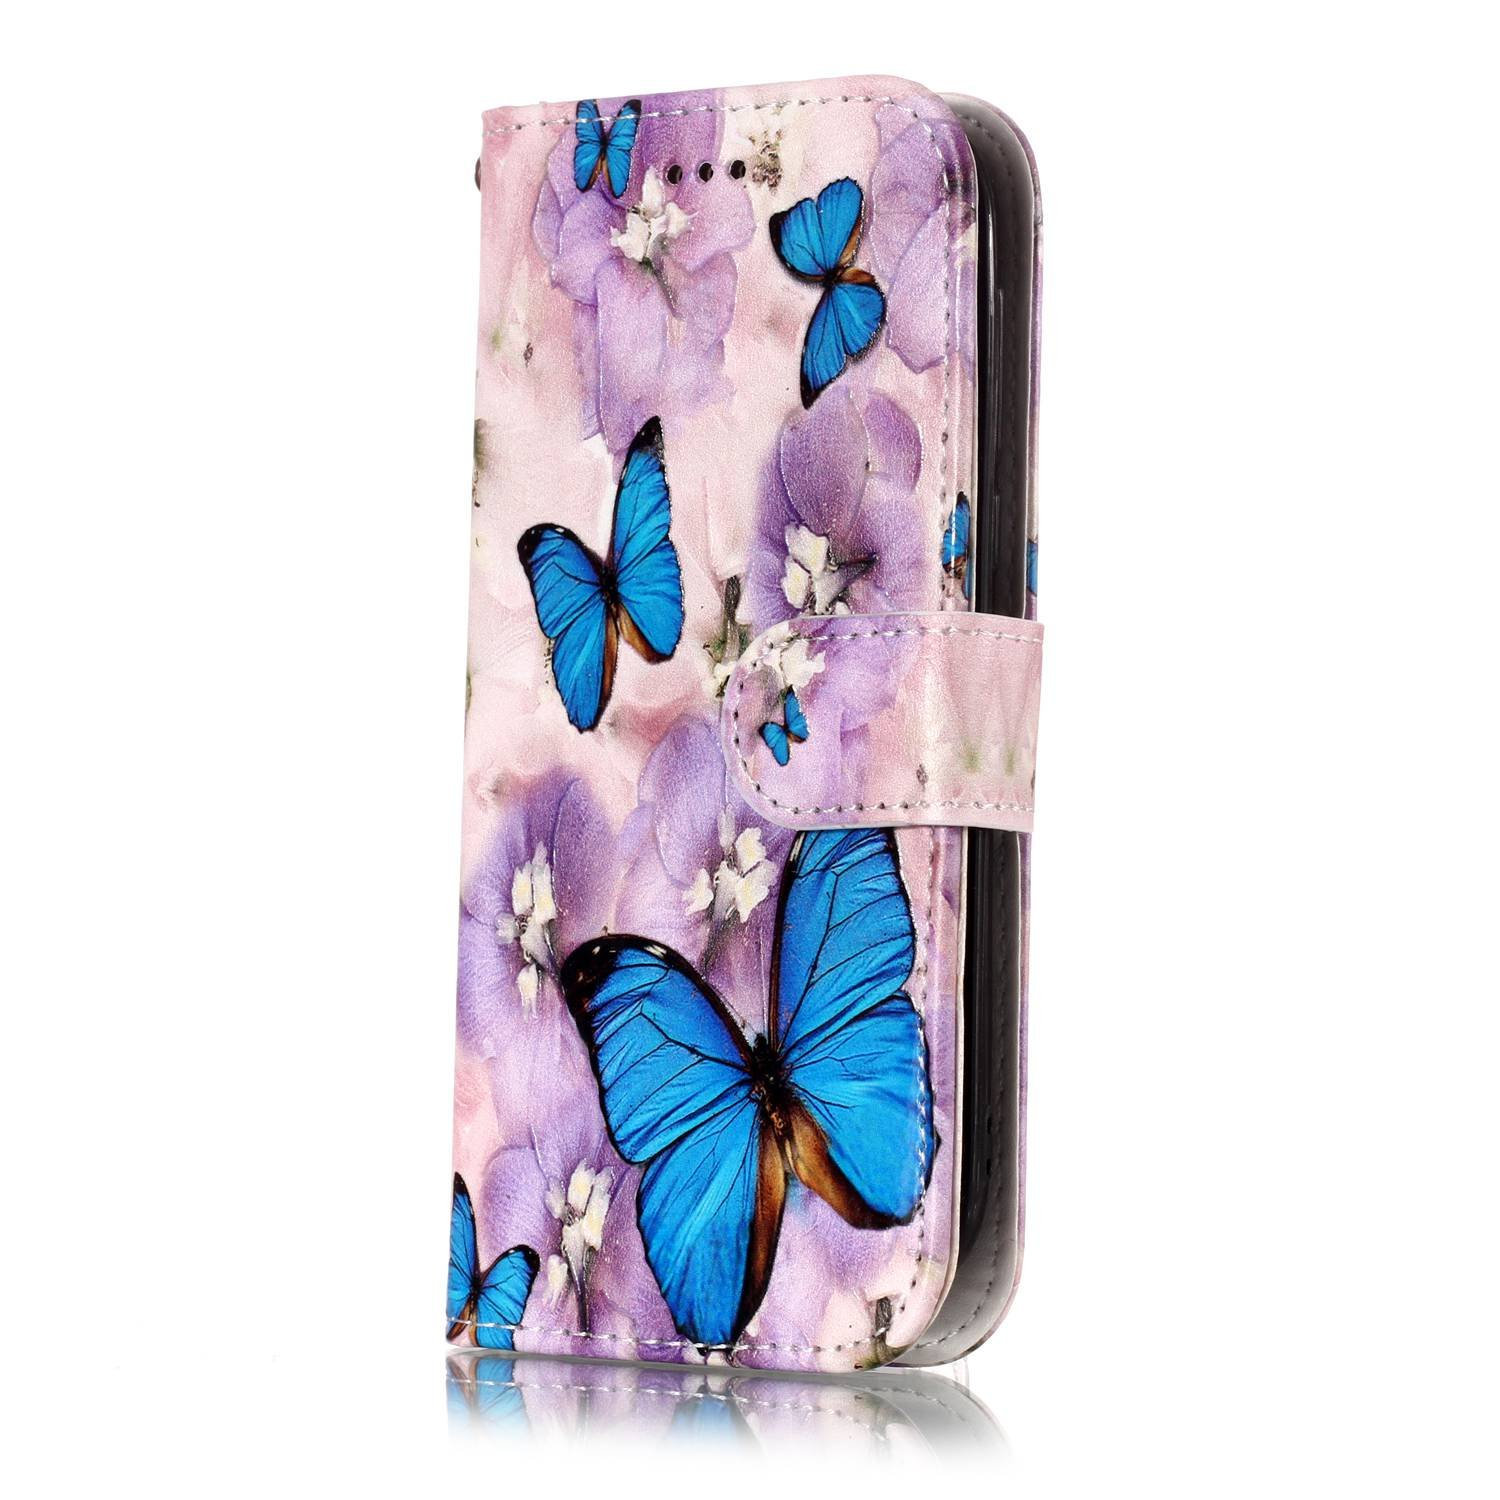 Surakey Flip Case Leather Protection Shell Wallet Retro Pattern Flip Cover with Stand Function Credit Card Slots for Nokia 1,Colorful Mandala Nokia 1 Leather Case